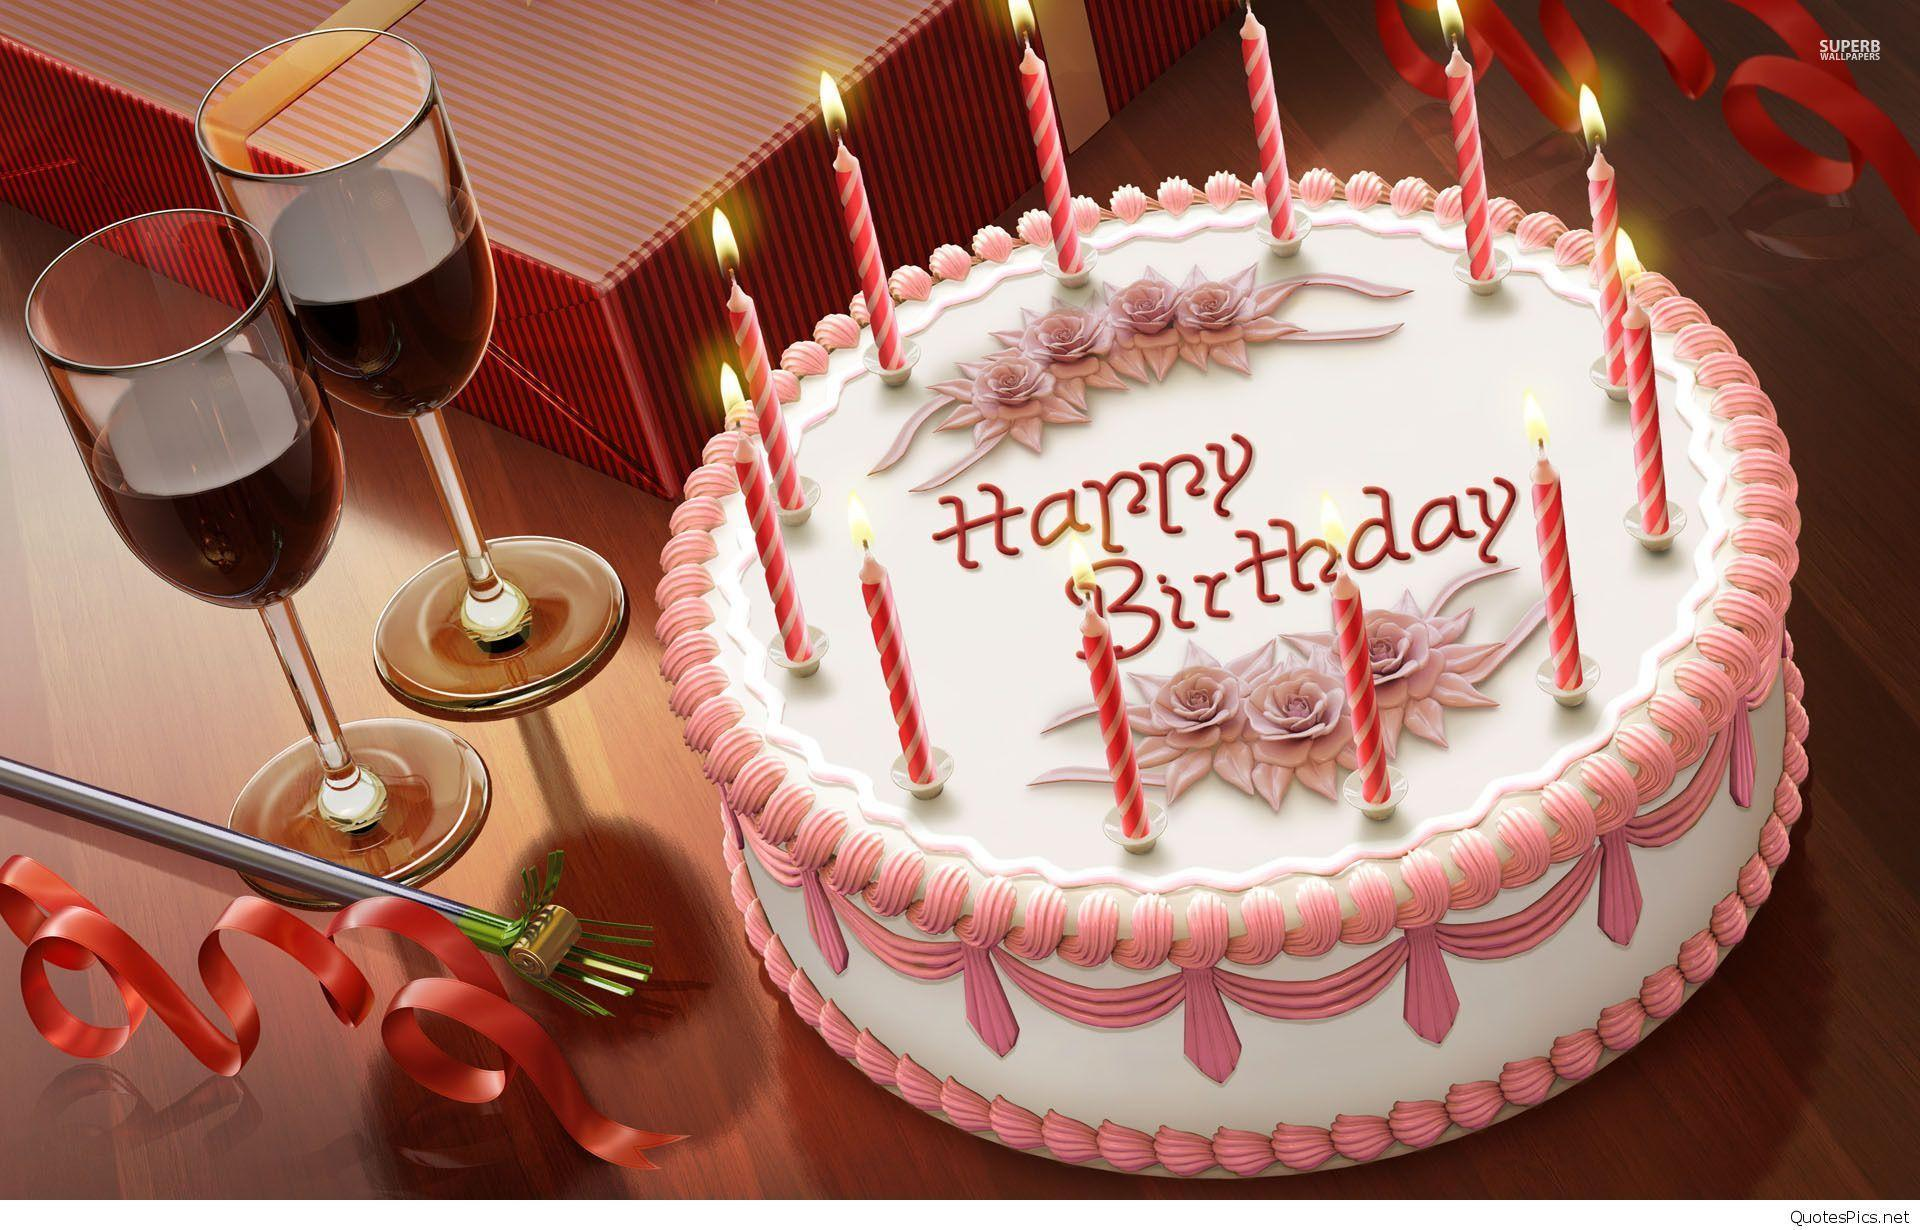 Birthday Cakes Wallpapers Wallpaper Cave